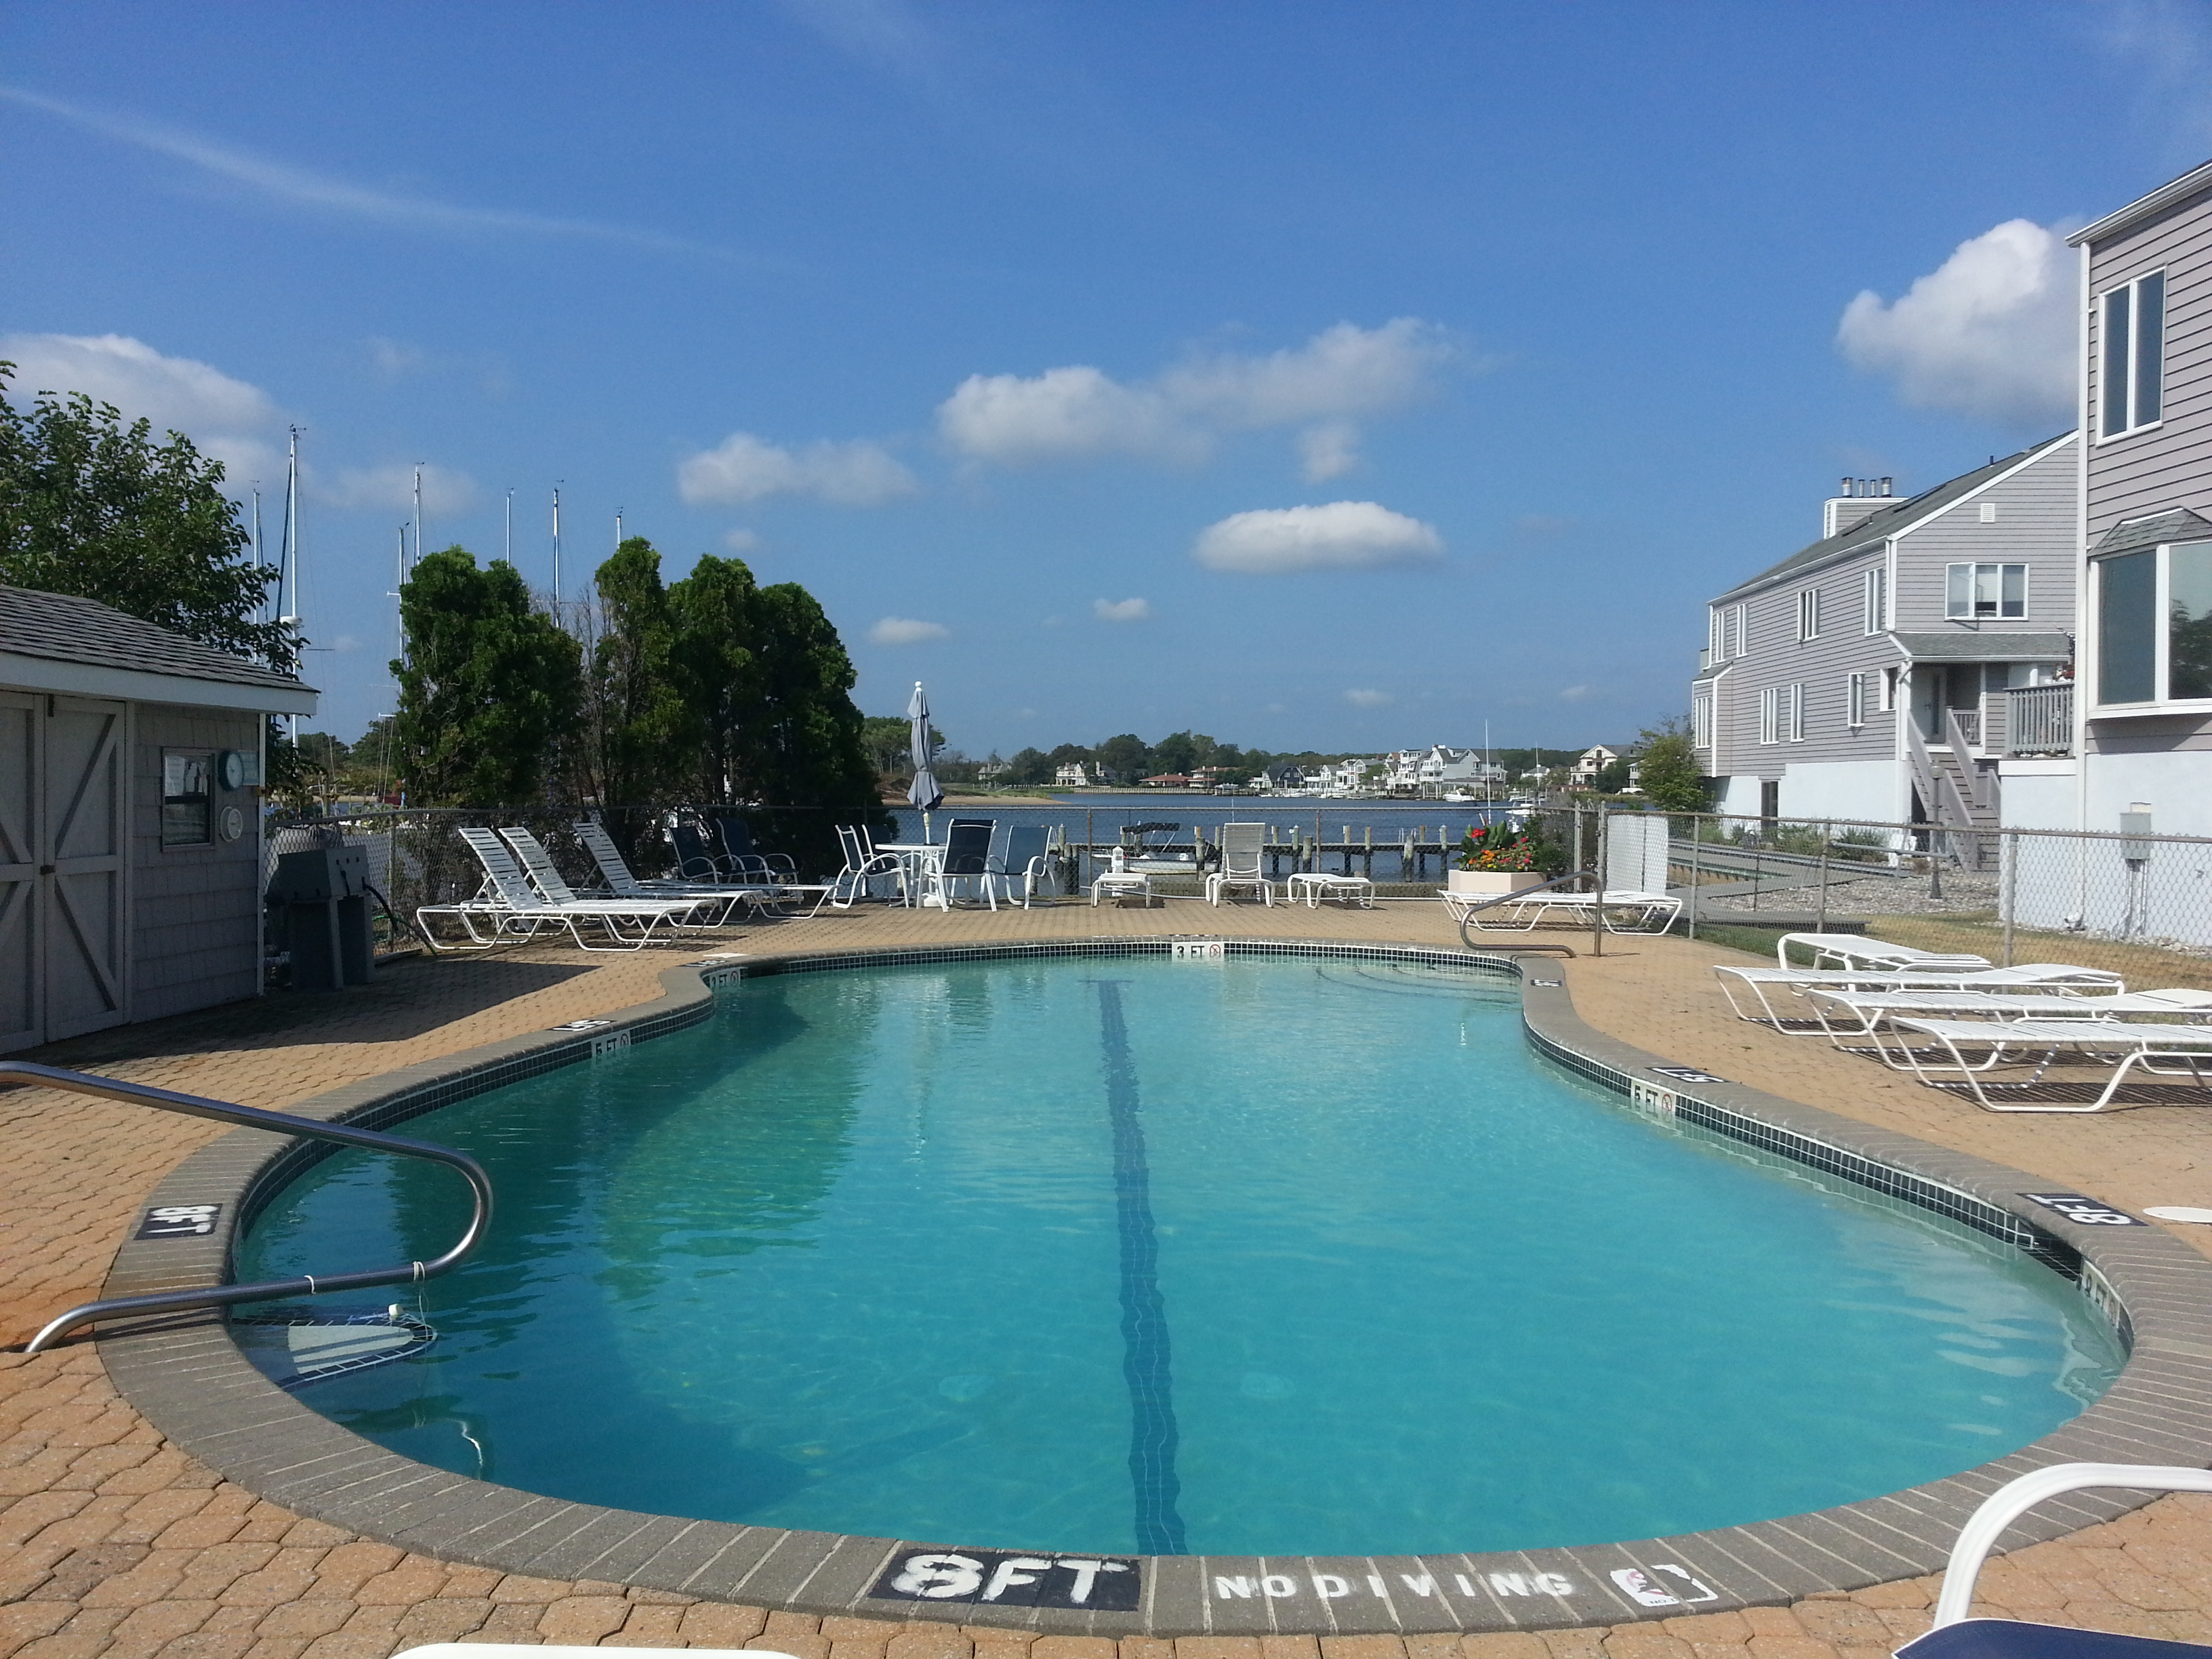 Among the Waterways amenities is this pool overlooking the Shrewsbury River.